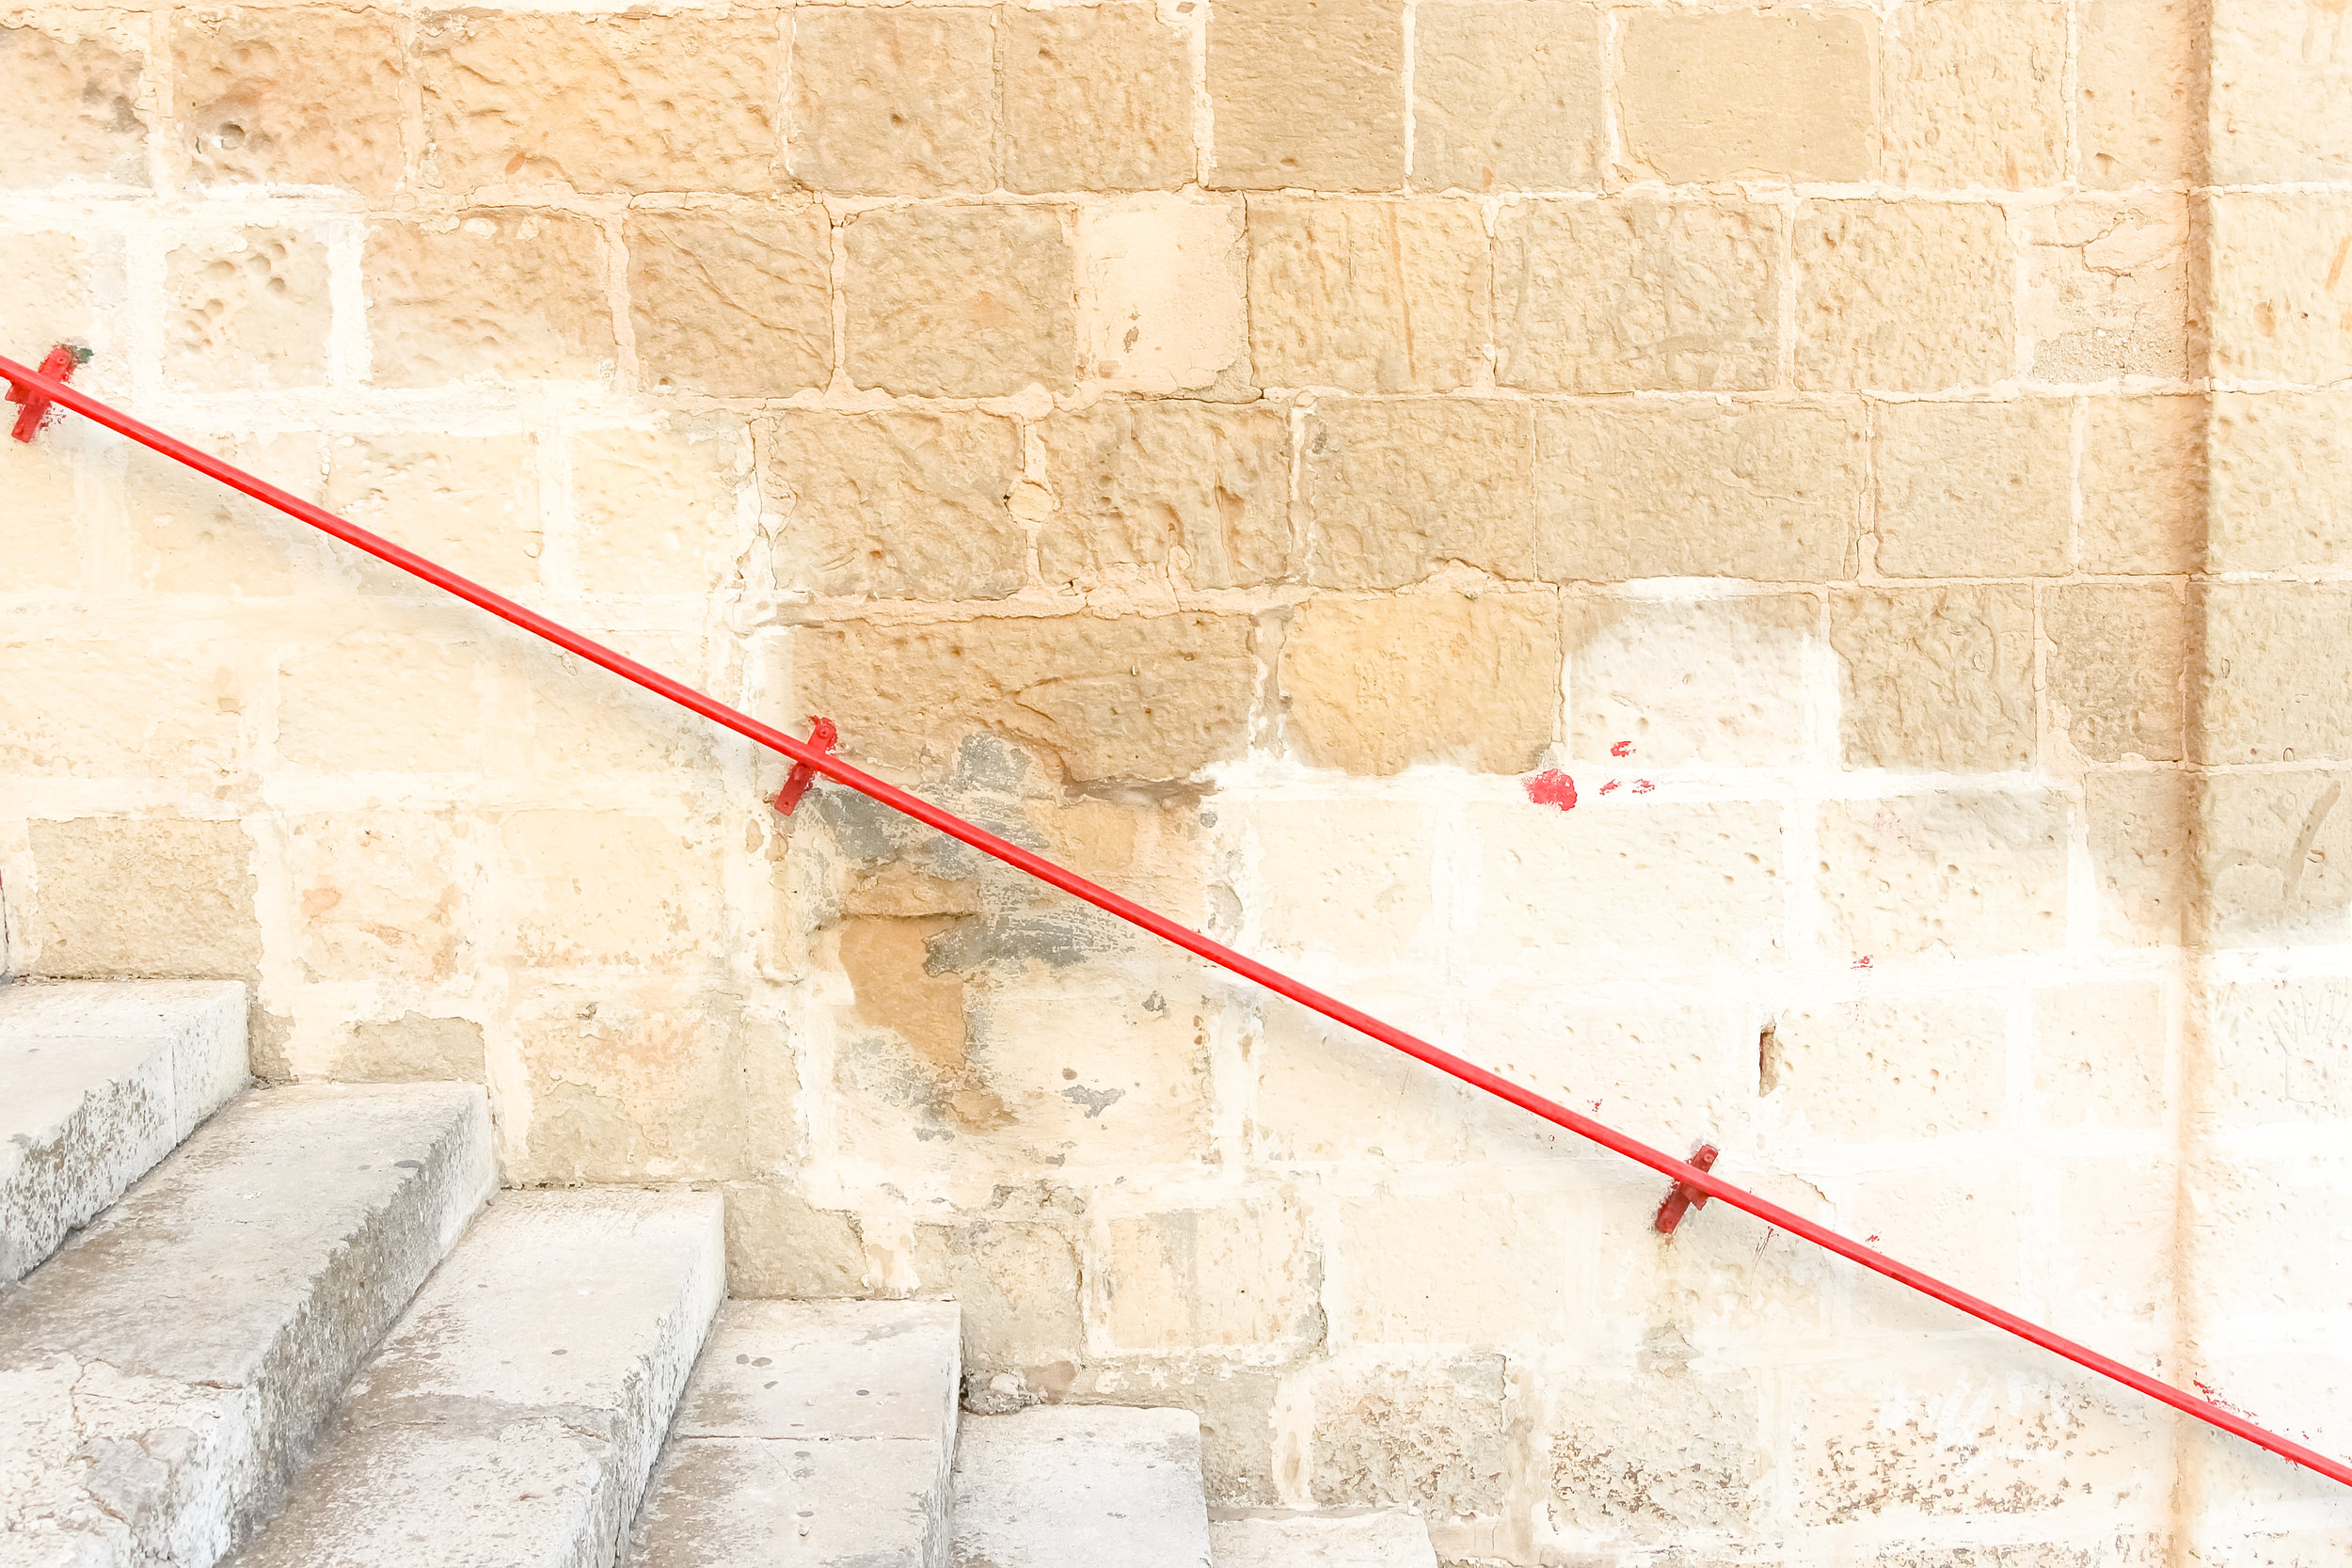 Go | Stairs | Old Town of Valletta | - Thinking About Appreciation For Quality In Malta | Malta, Europe | DoLessGetMoreDone.com | - Canon Minimal Travel Documentary Photography - search for Liveability | Sustainability